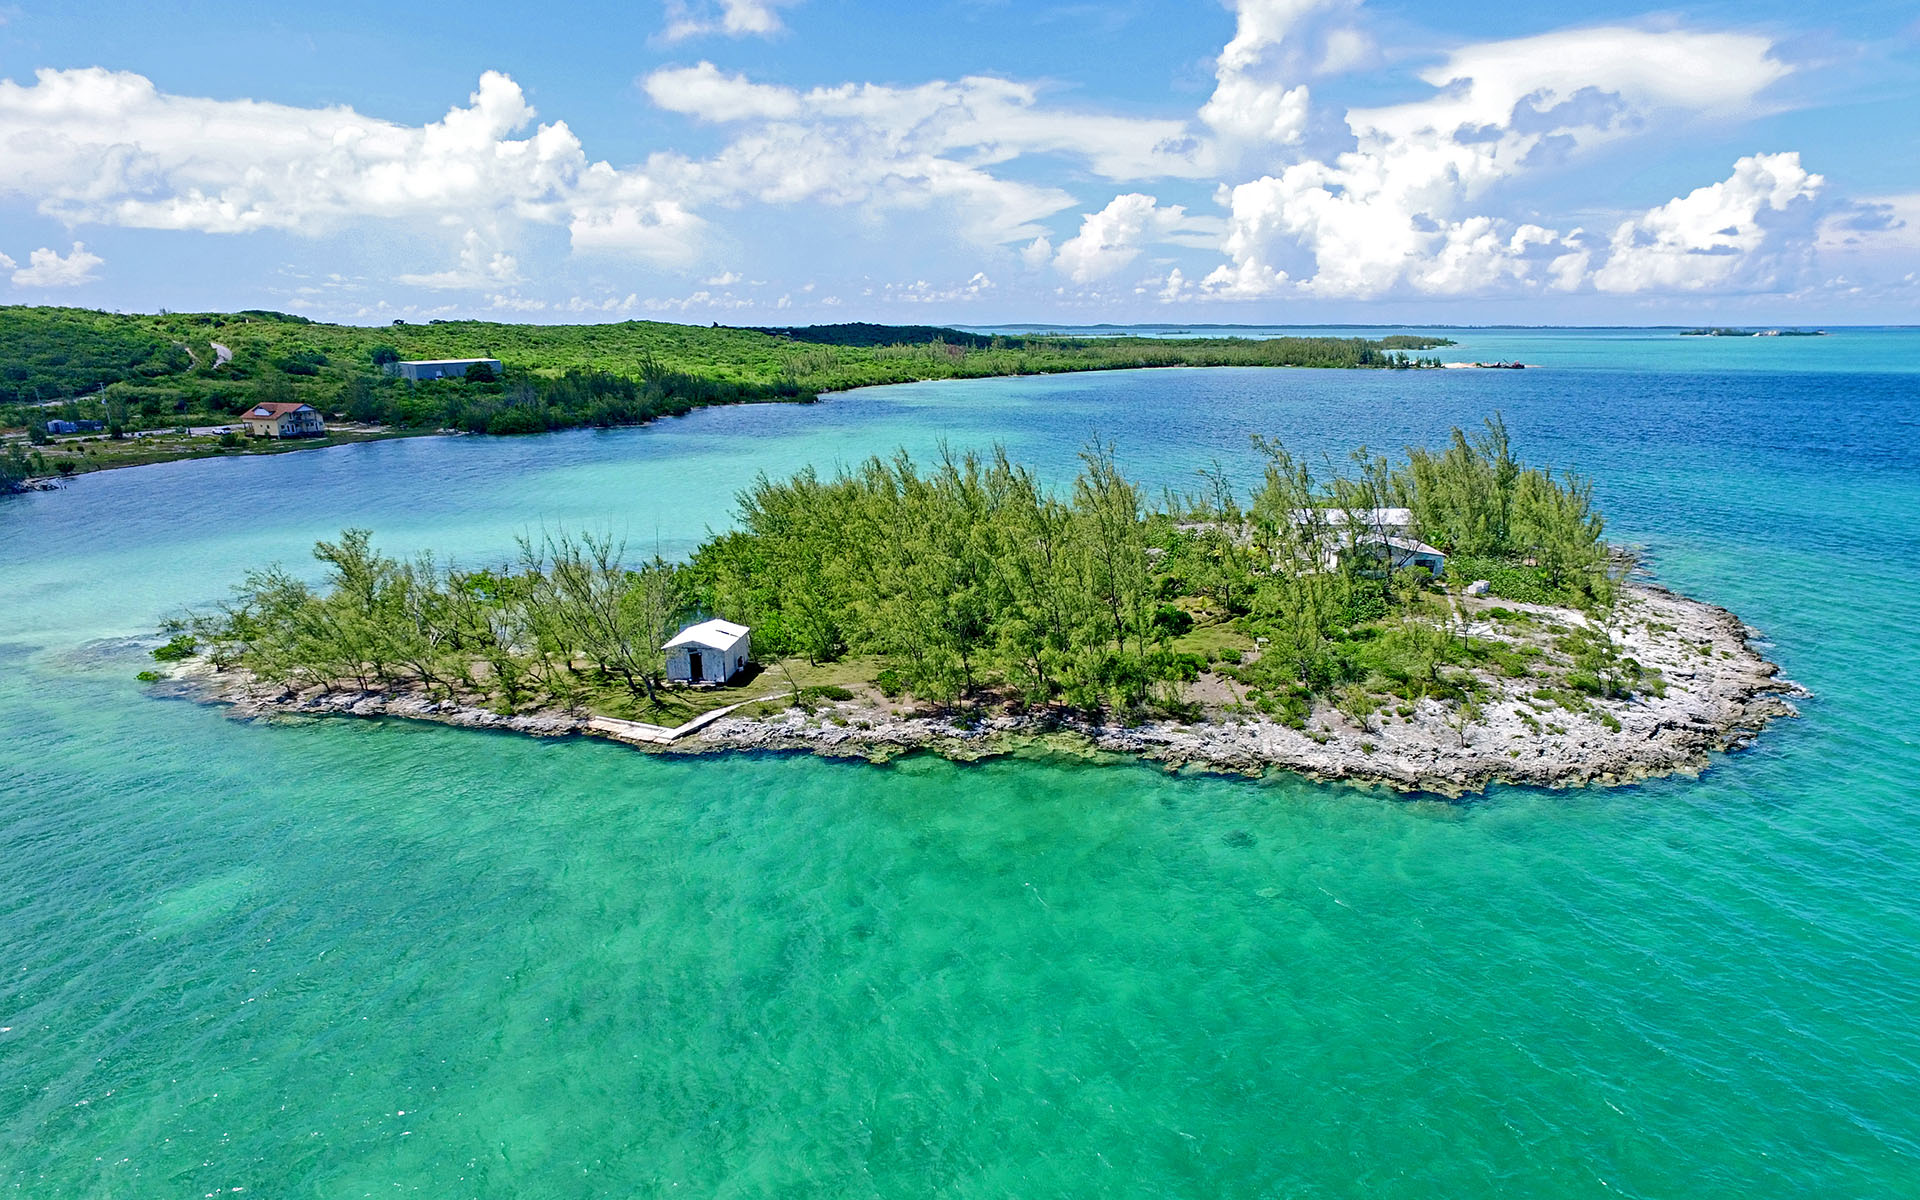 Isla privada por un Venta en Third Cay Private Island, near Harbour Island - MLS 29474 Harbour Island, Bahamas